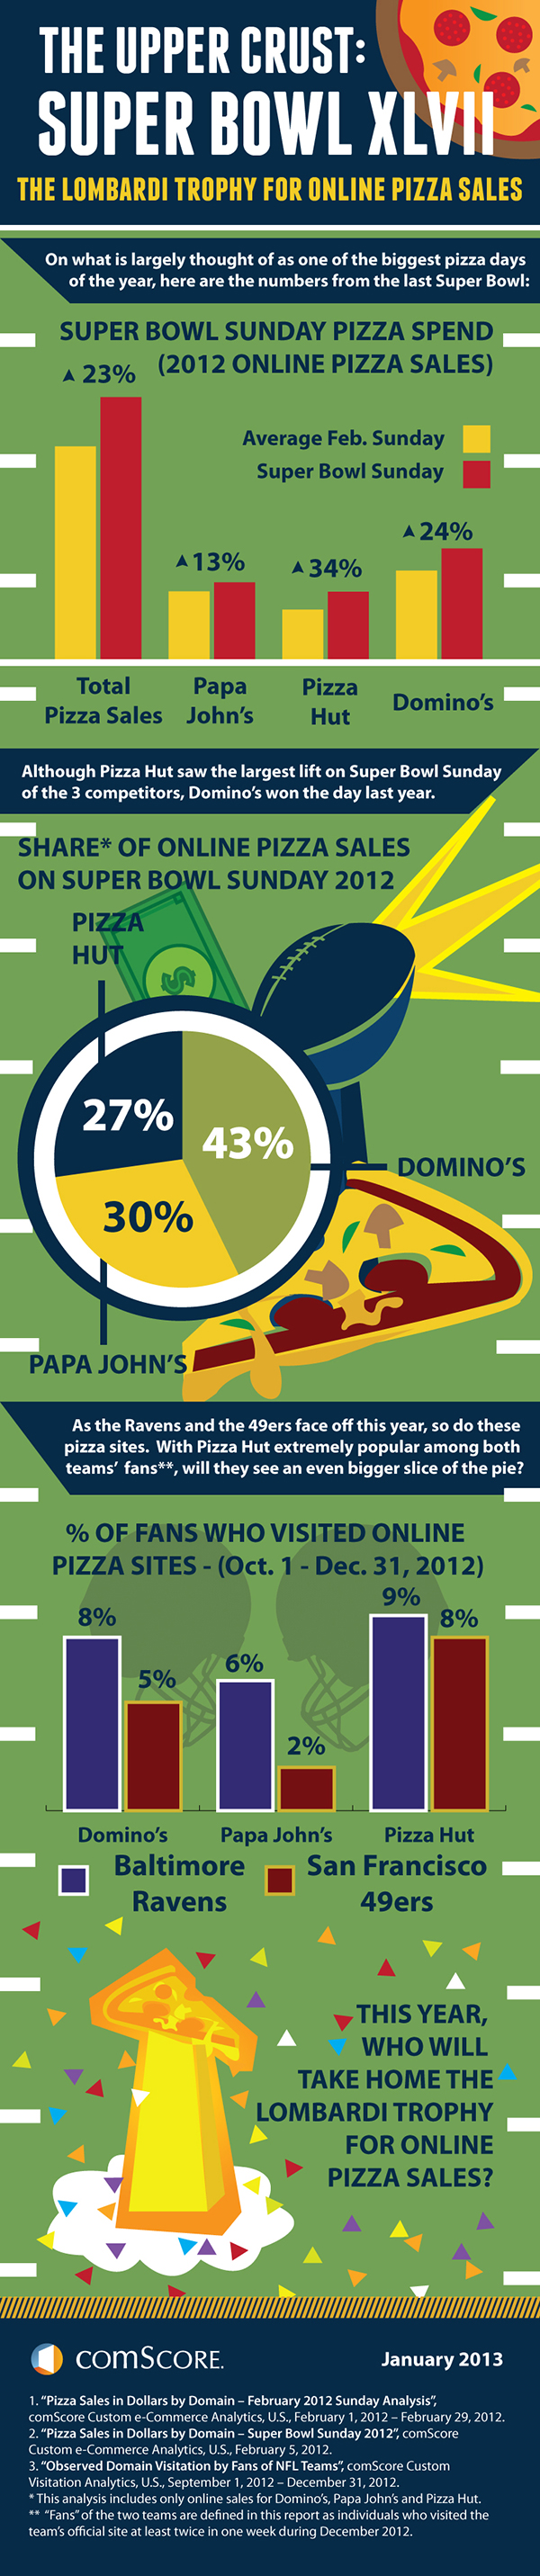 Super Bowl Sunday: Who Will Win the Lombardi Trophy for Online Pizza Sales?